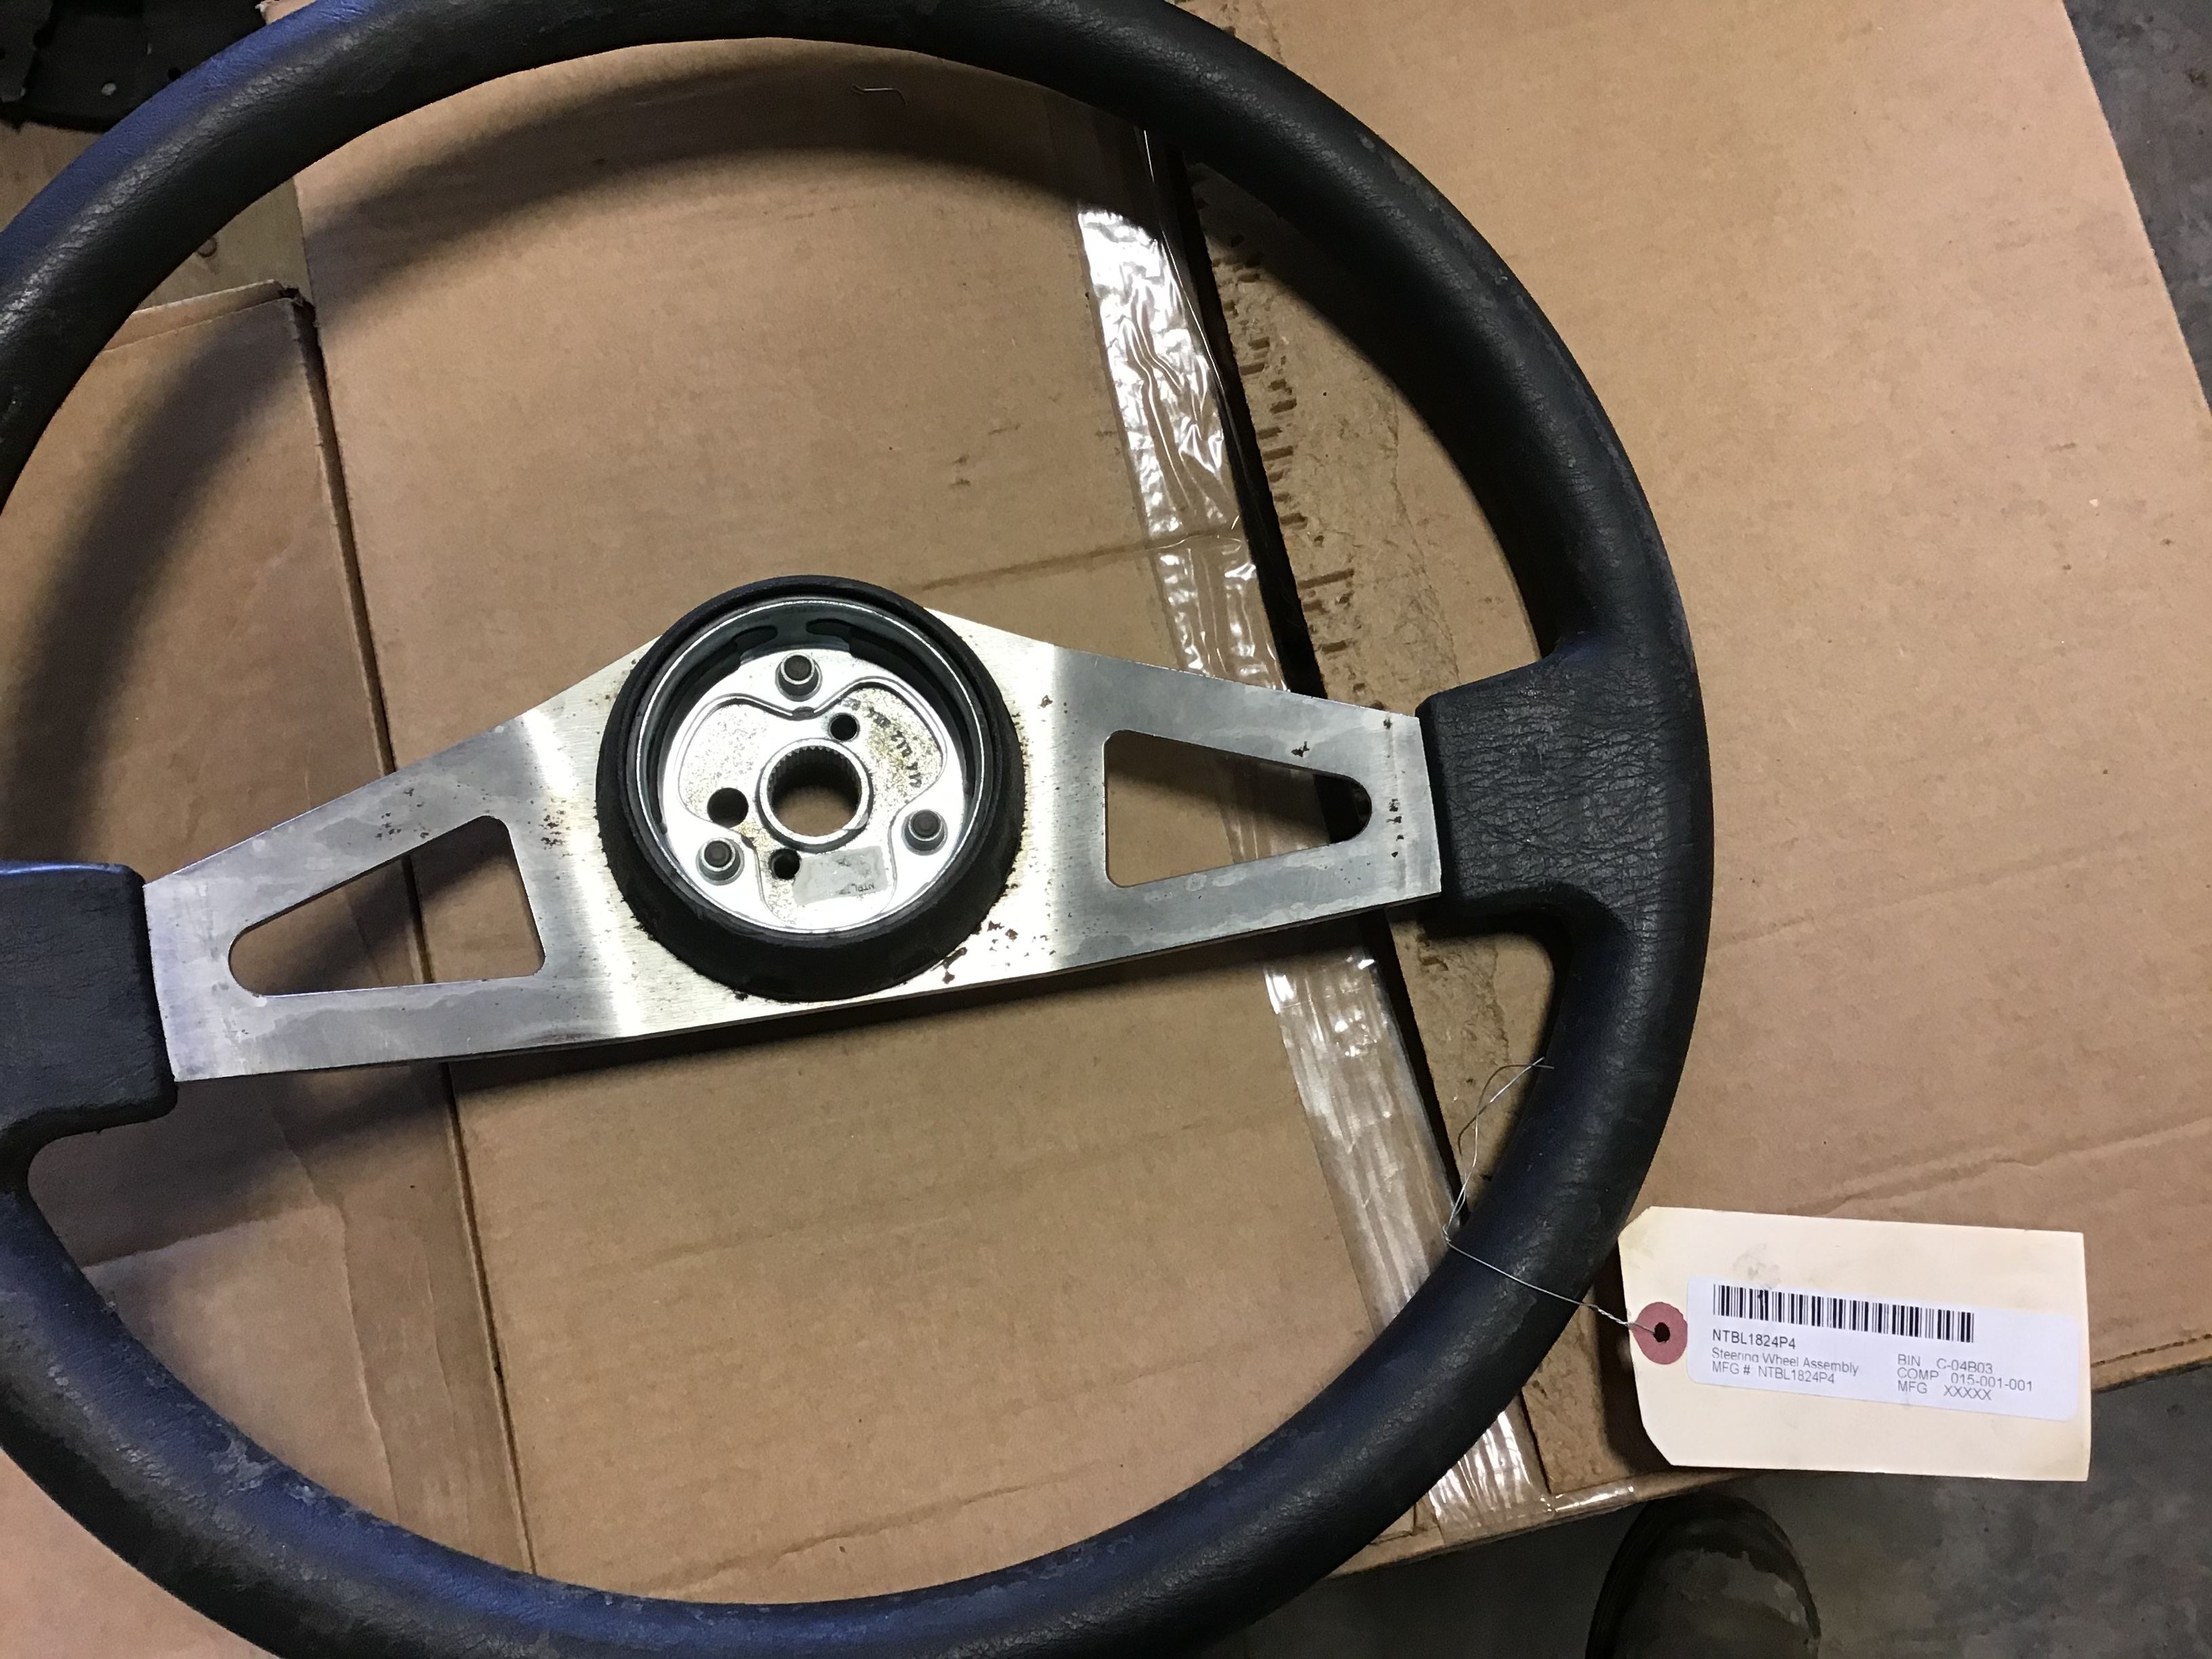 NTBL1824P4 Steering Wheel Assembly